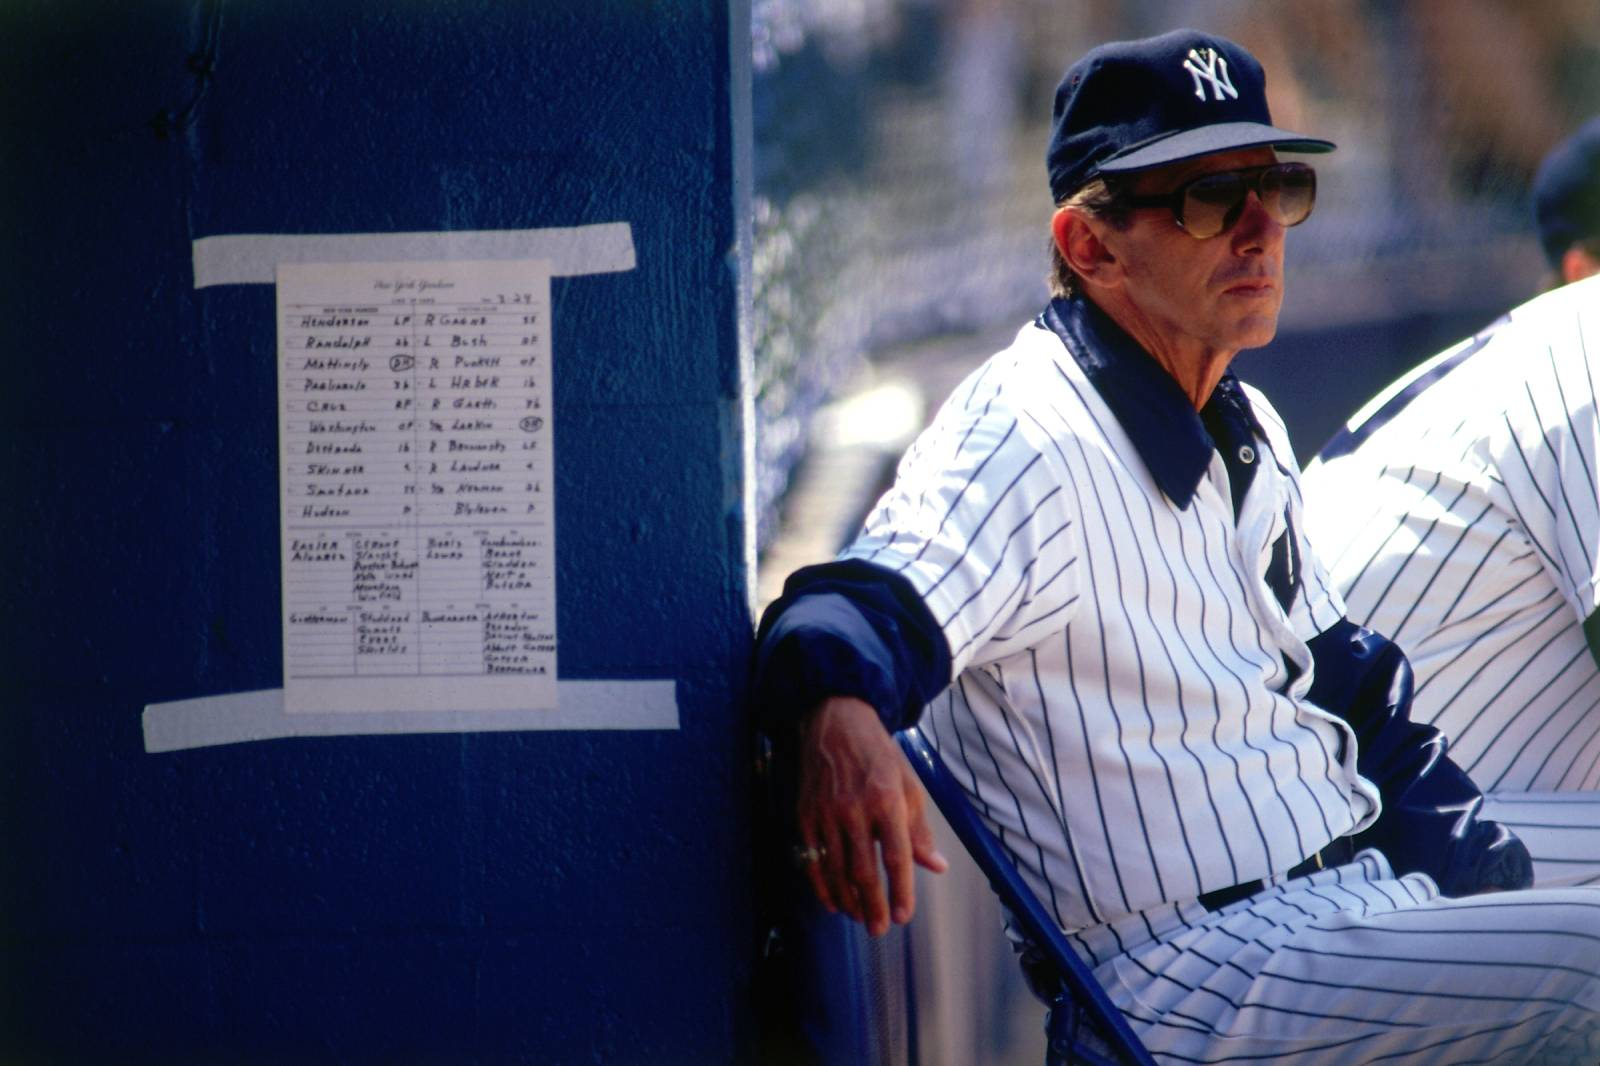 Baseball history may have changed when Yankees legend Billy Martin died in a car accident on Christmas Day 1989.